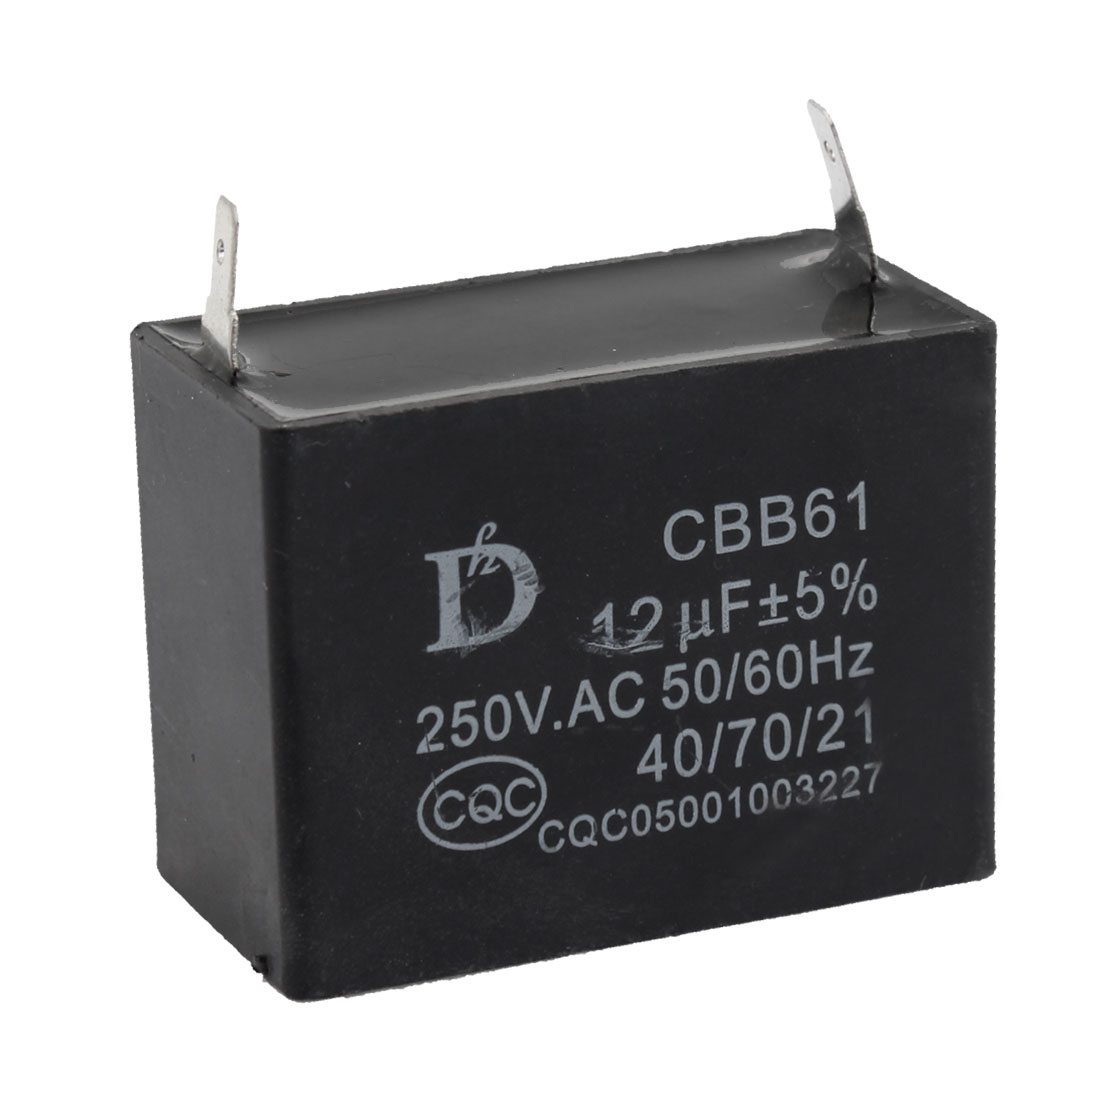 CBB61 12uF 50/60Hz DIP Motor Run Capacitor AC 250V Black